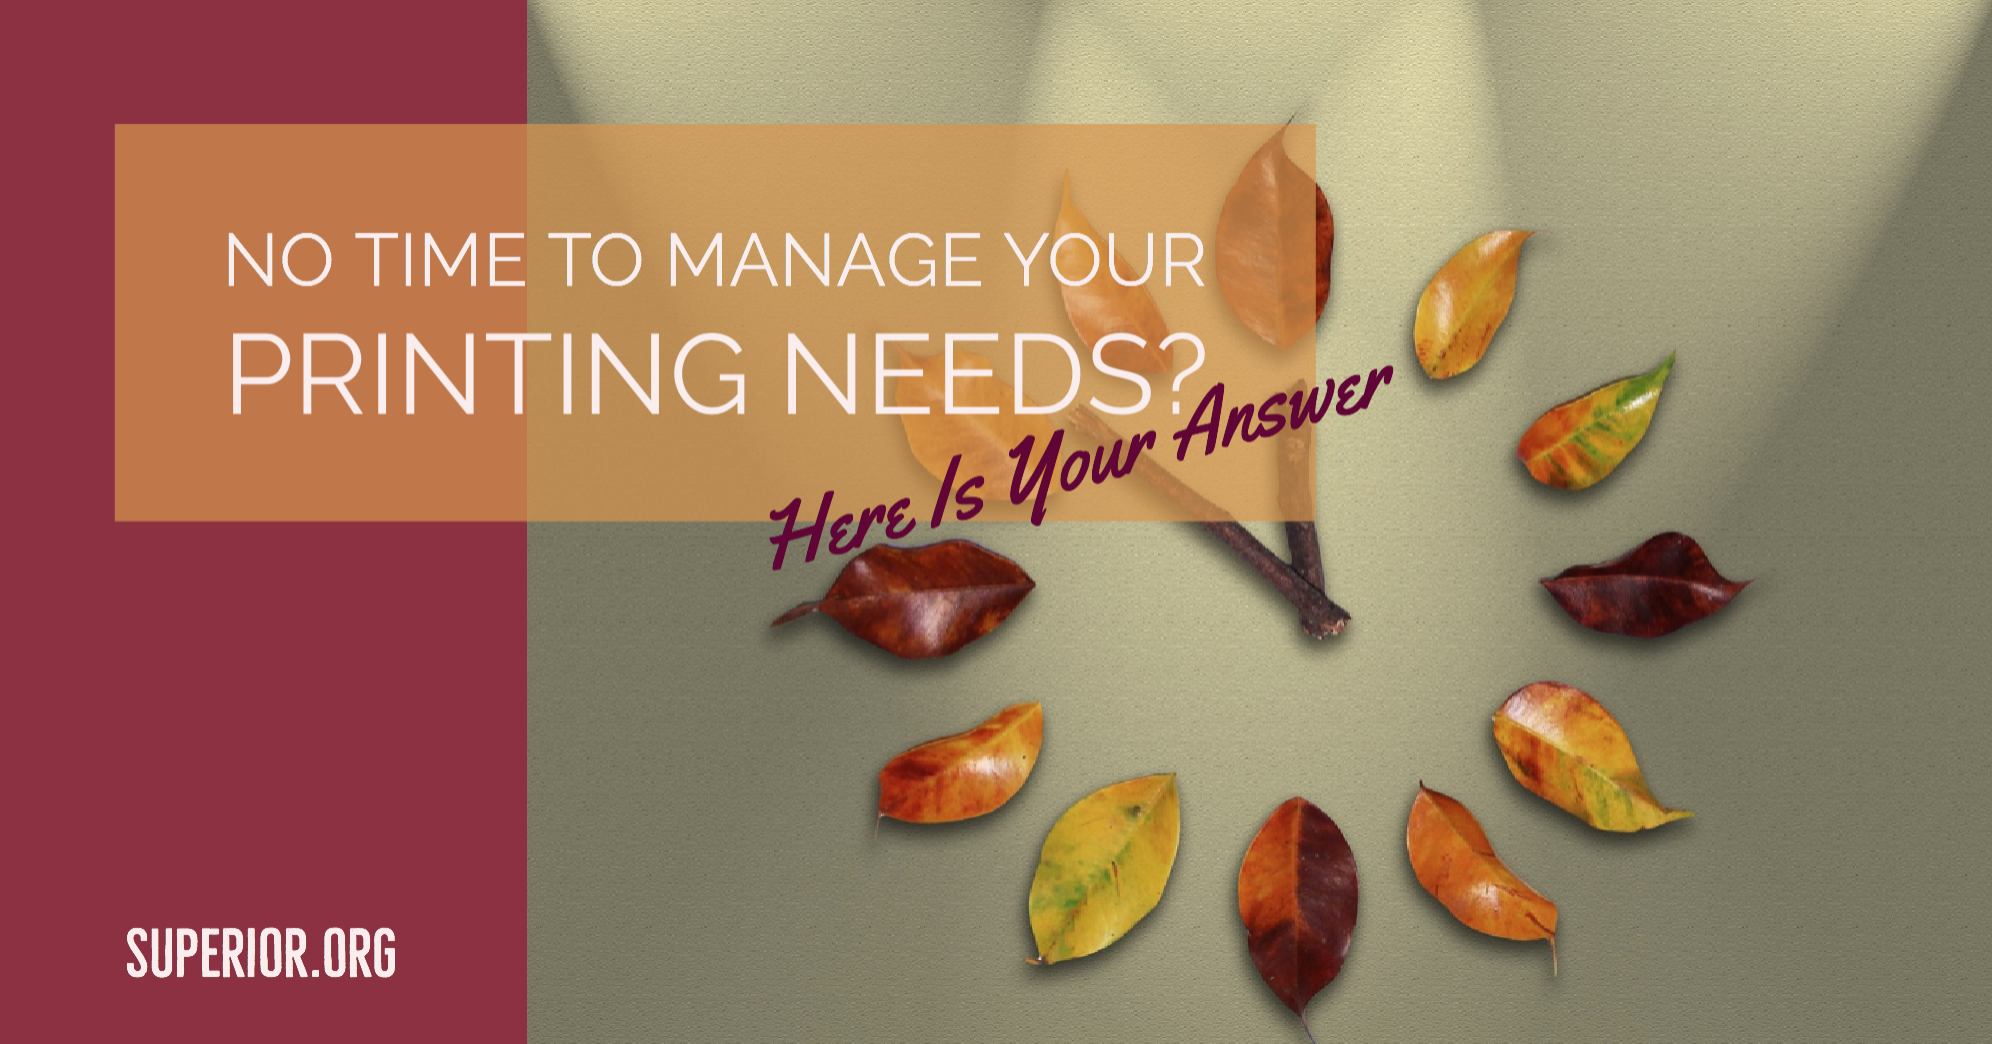 No Time to Manage Your Printing Needs? Print Management Is Your Answer